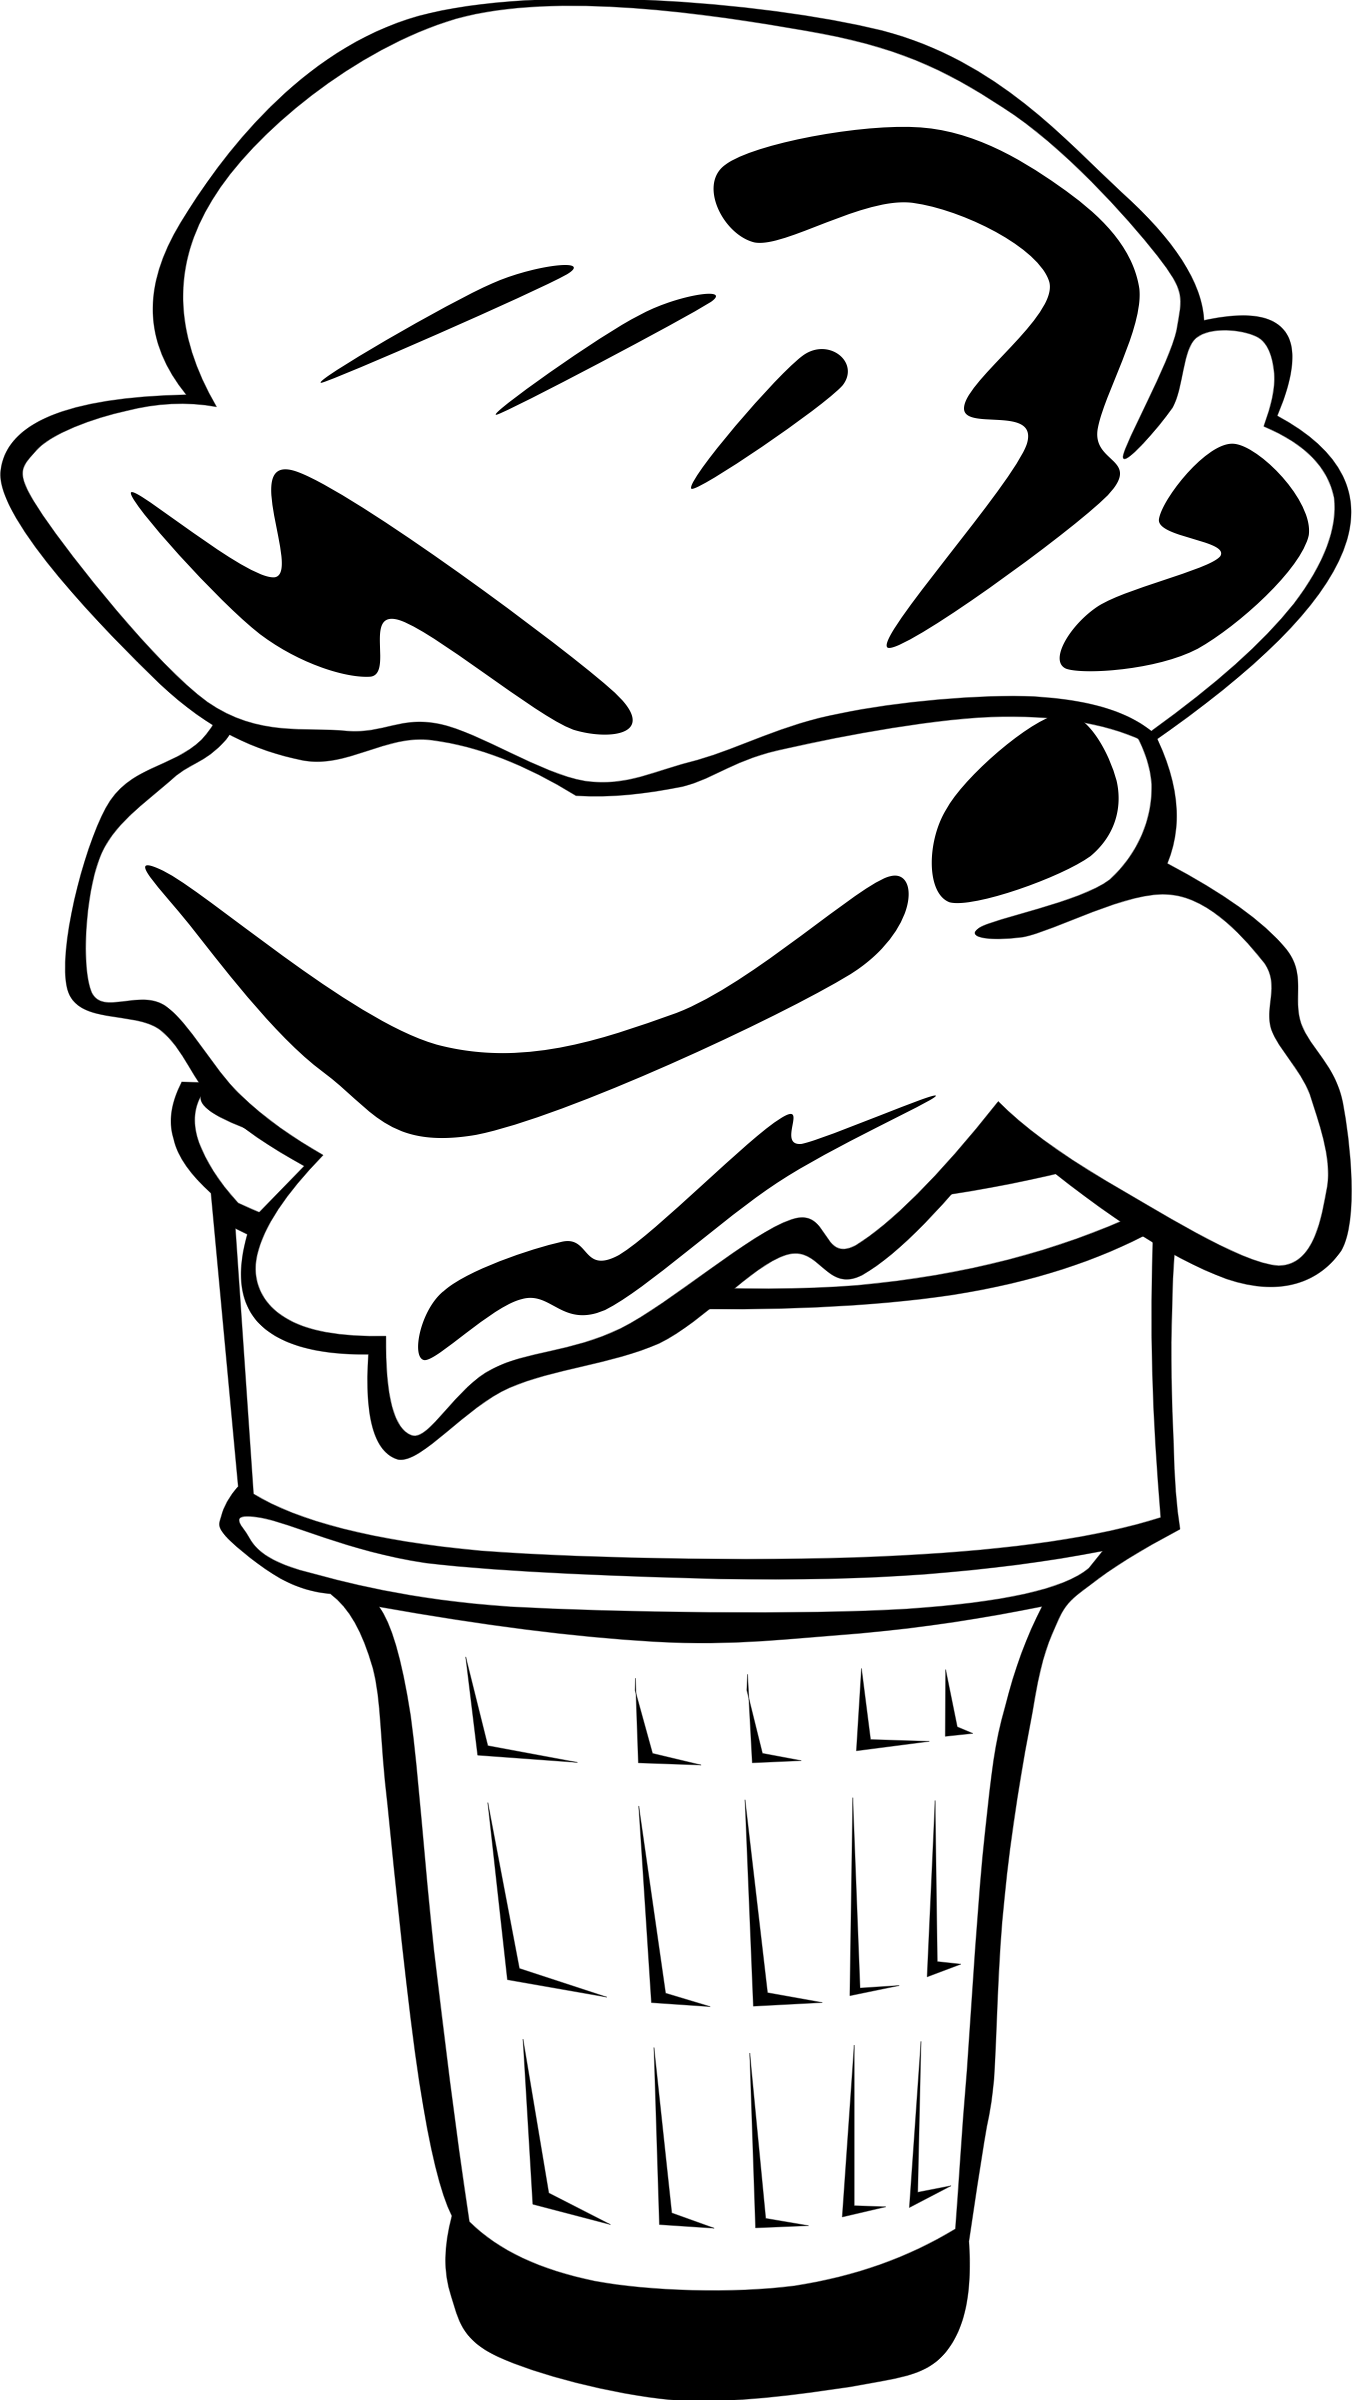 desserts clipart black and white